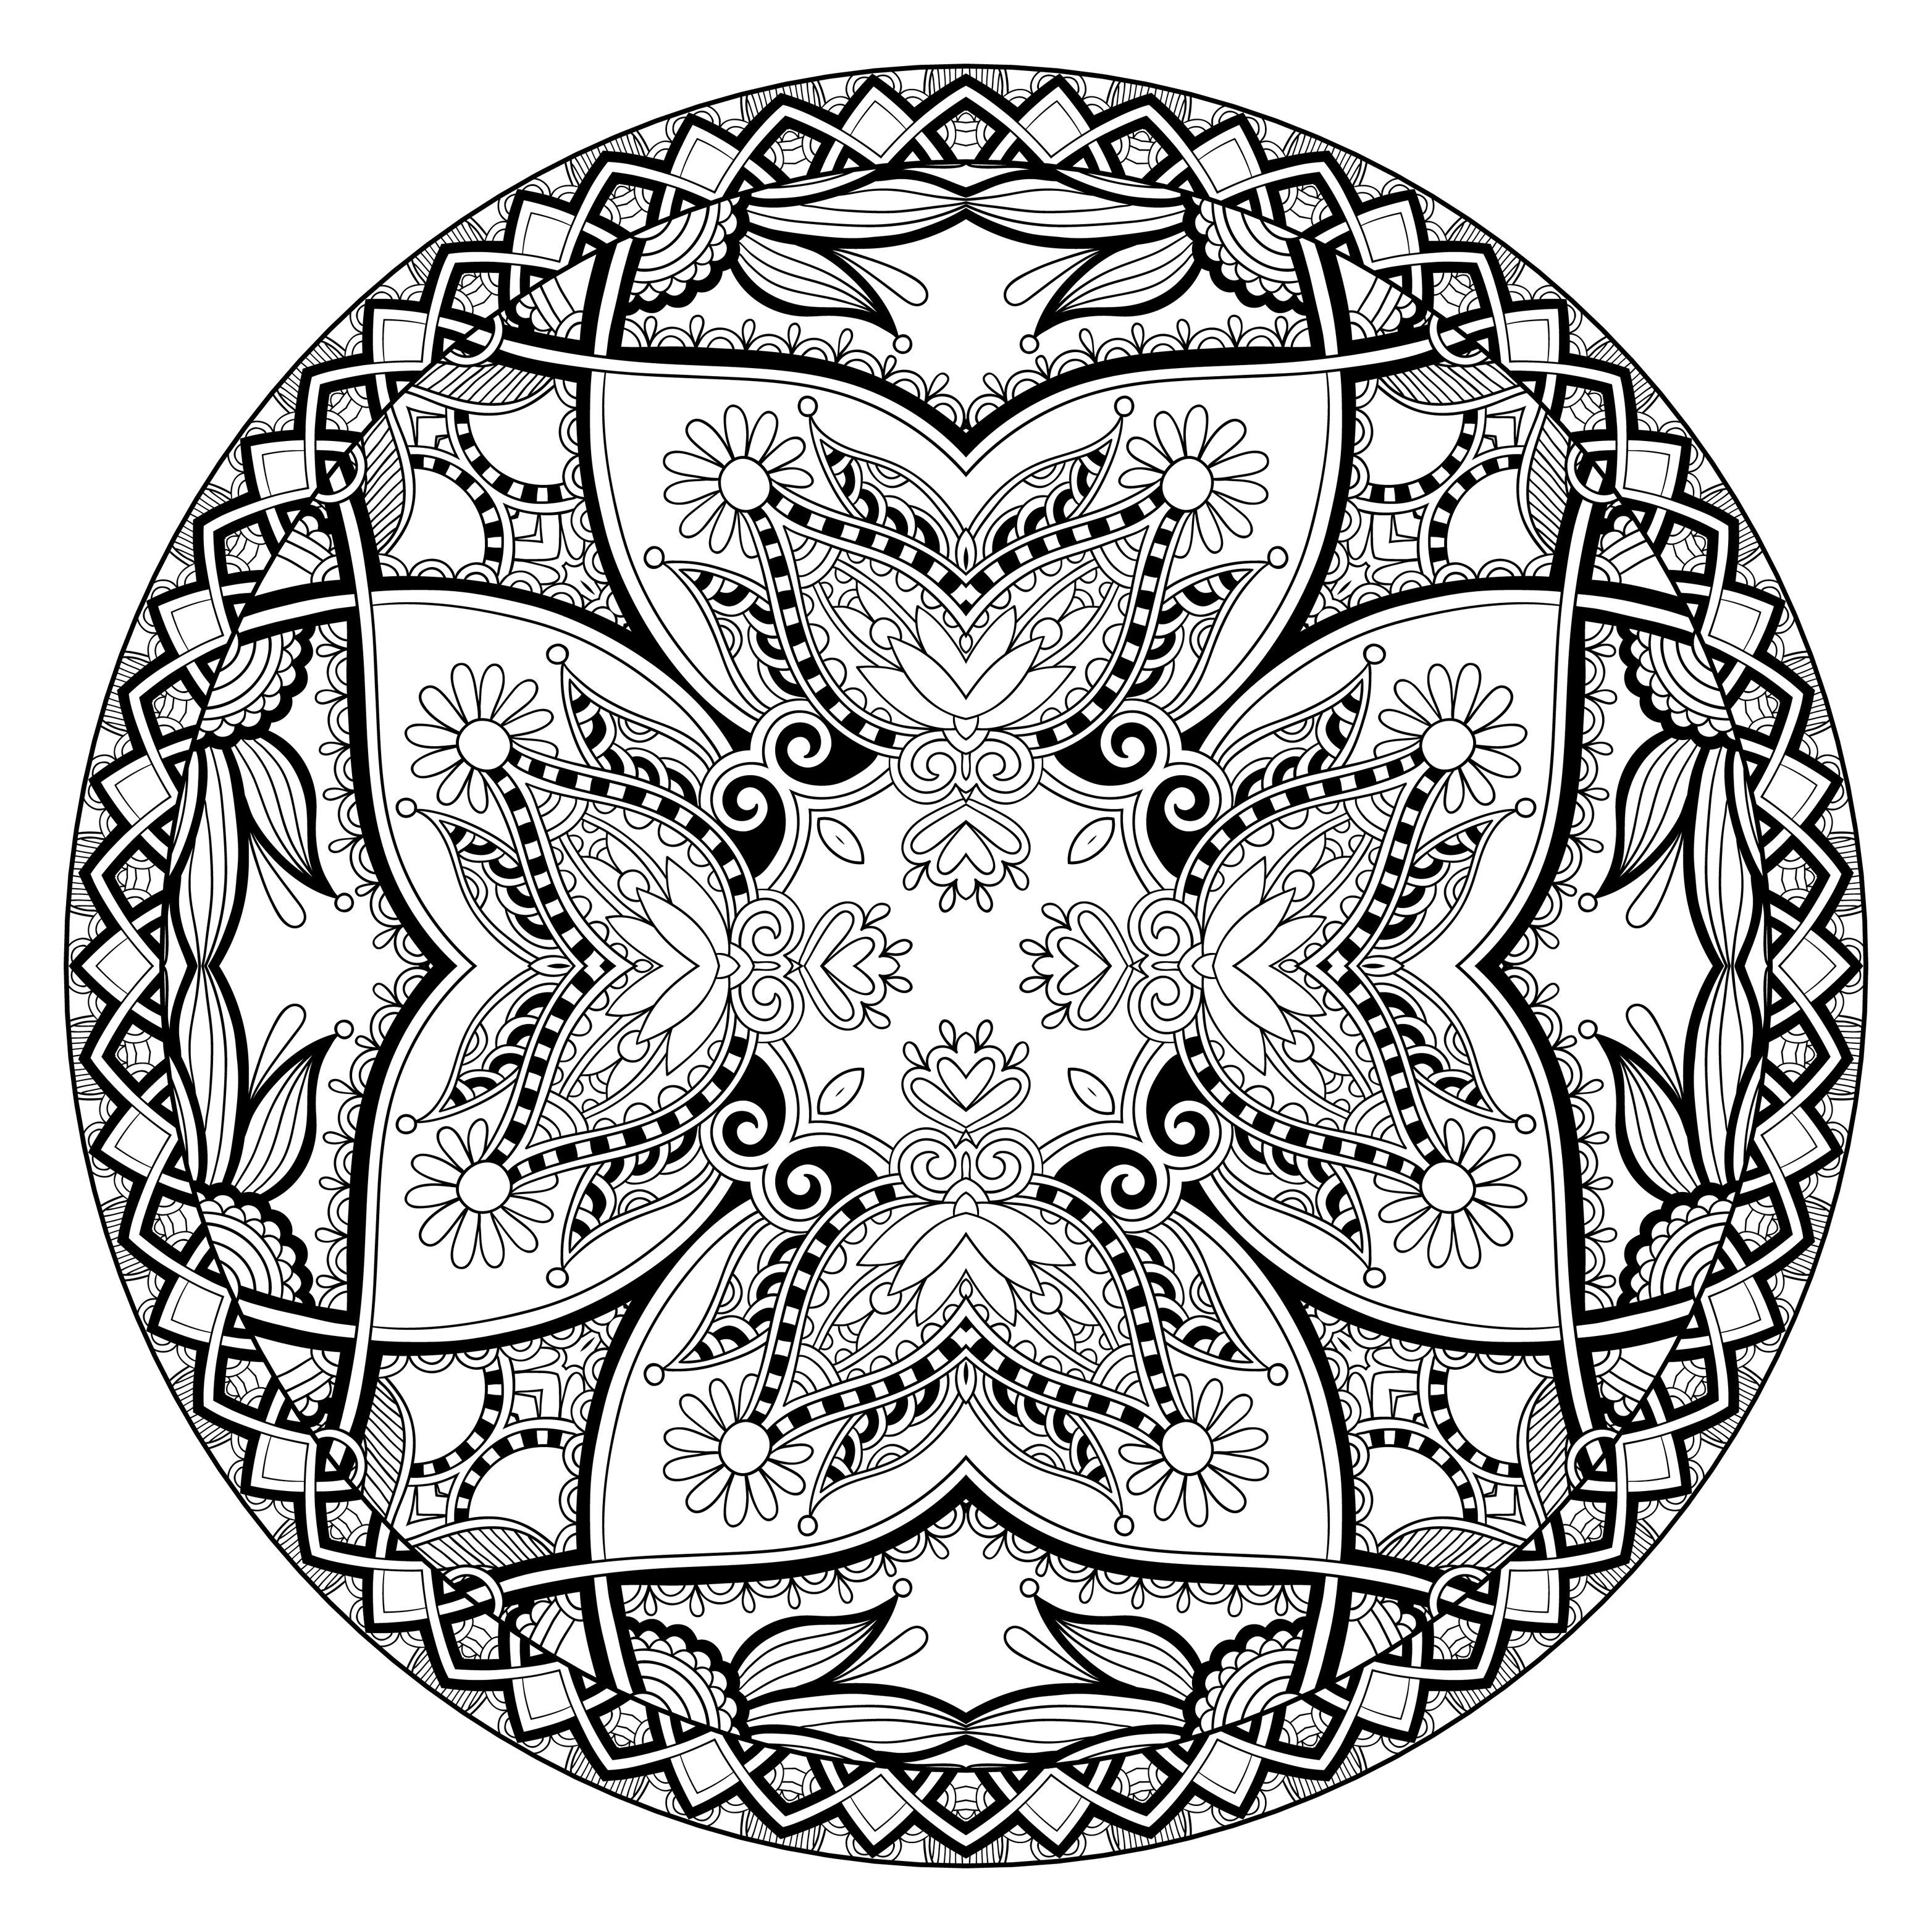 Mandala Coloring Pages Advanced Level Printable - Coloring ...